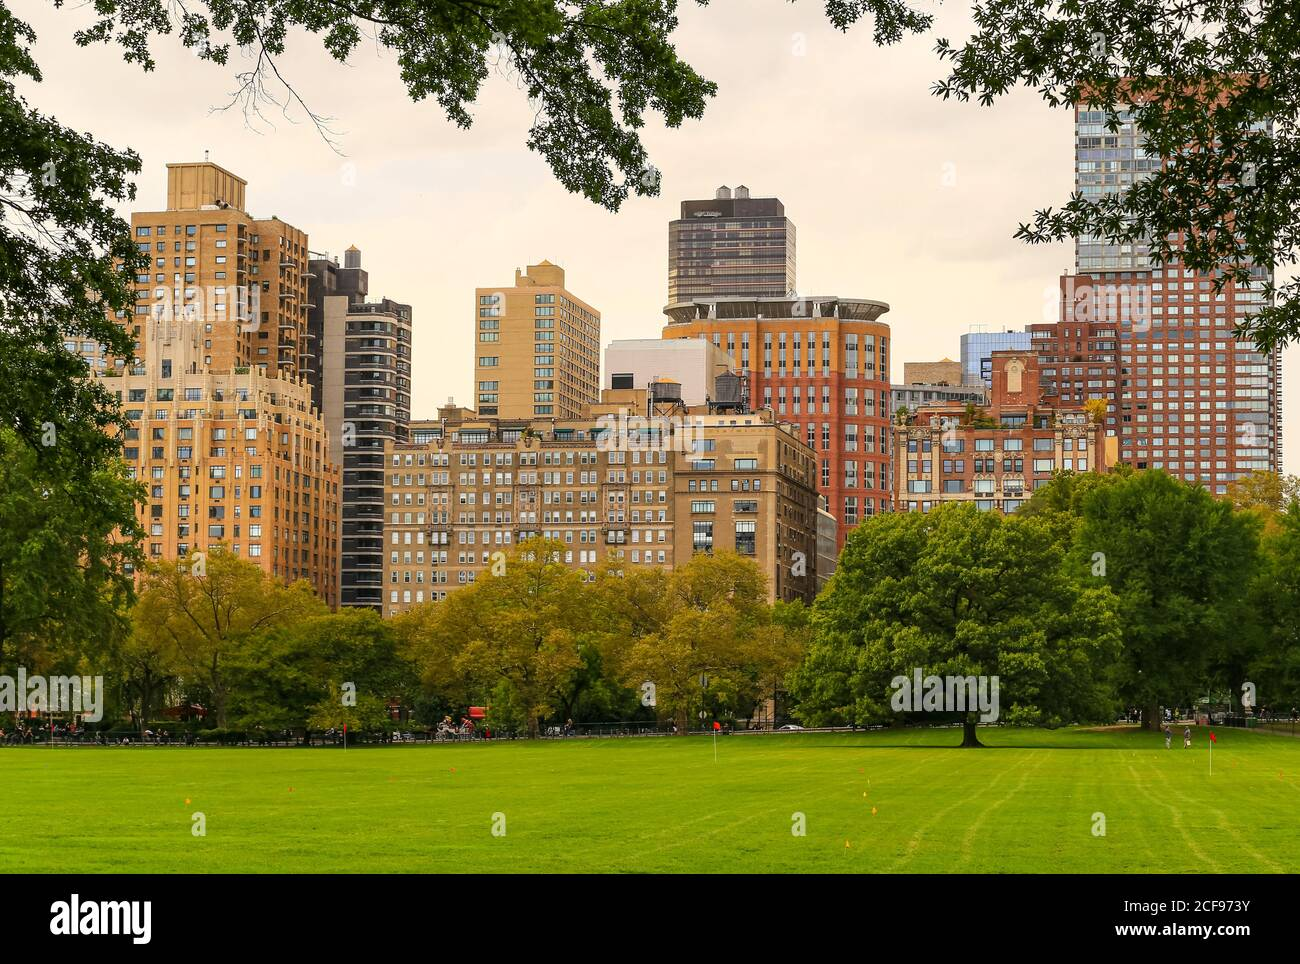 New York City, USA - October 7, 2019: View across the Sheep Meadow in Central Park to the skyline of adjacent buildings near Lincoln Square. Stock Photo